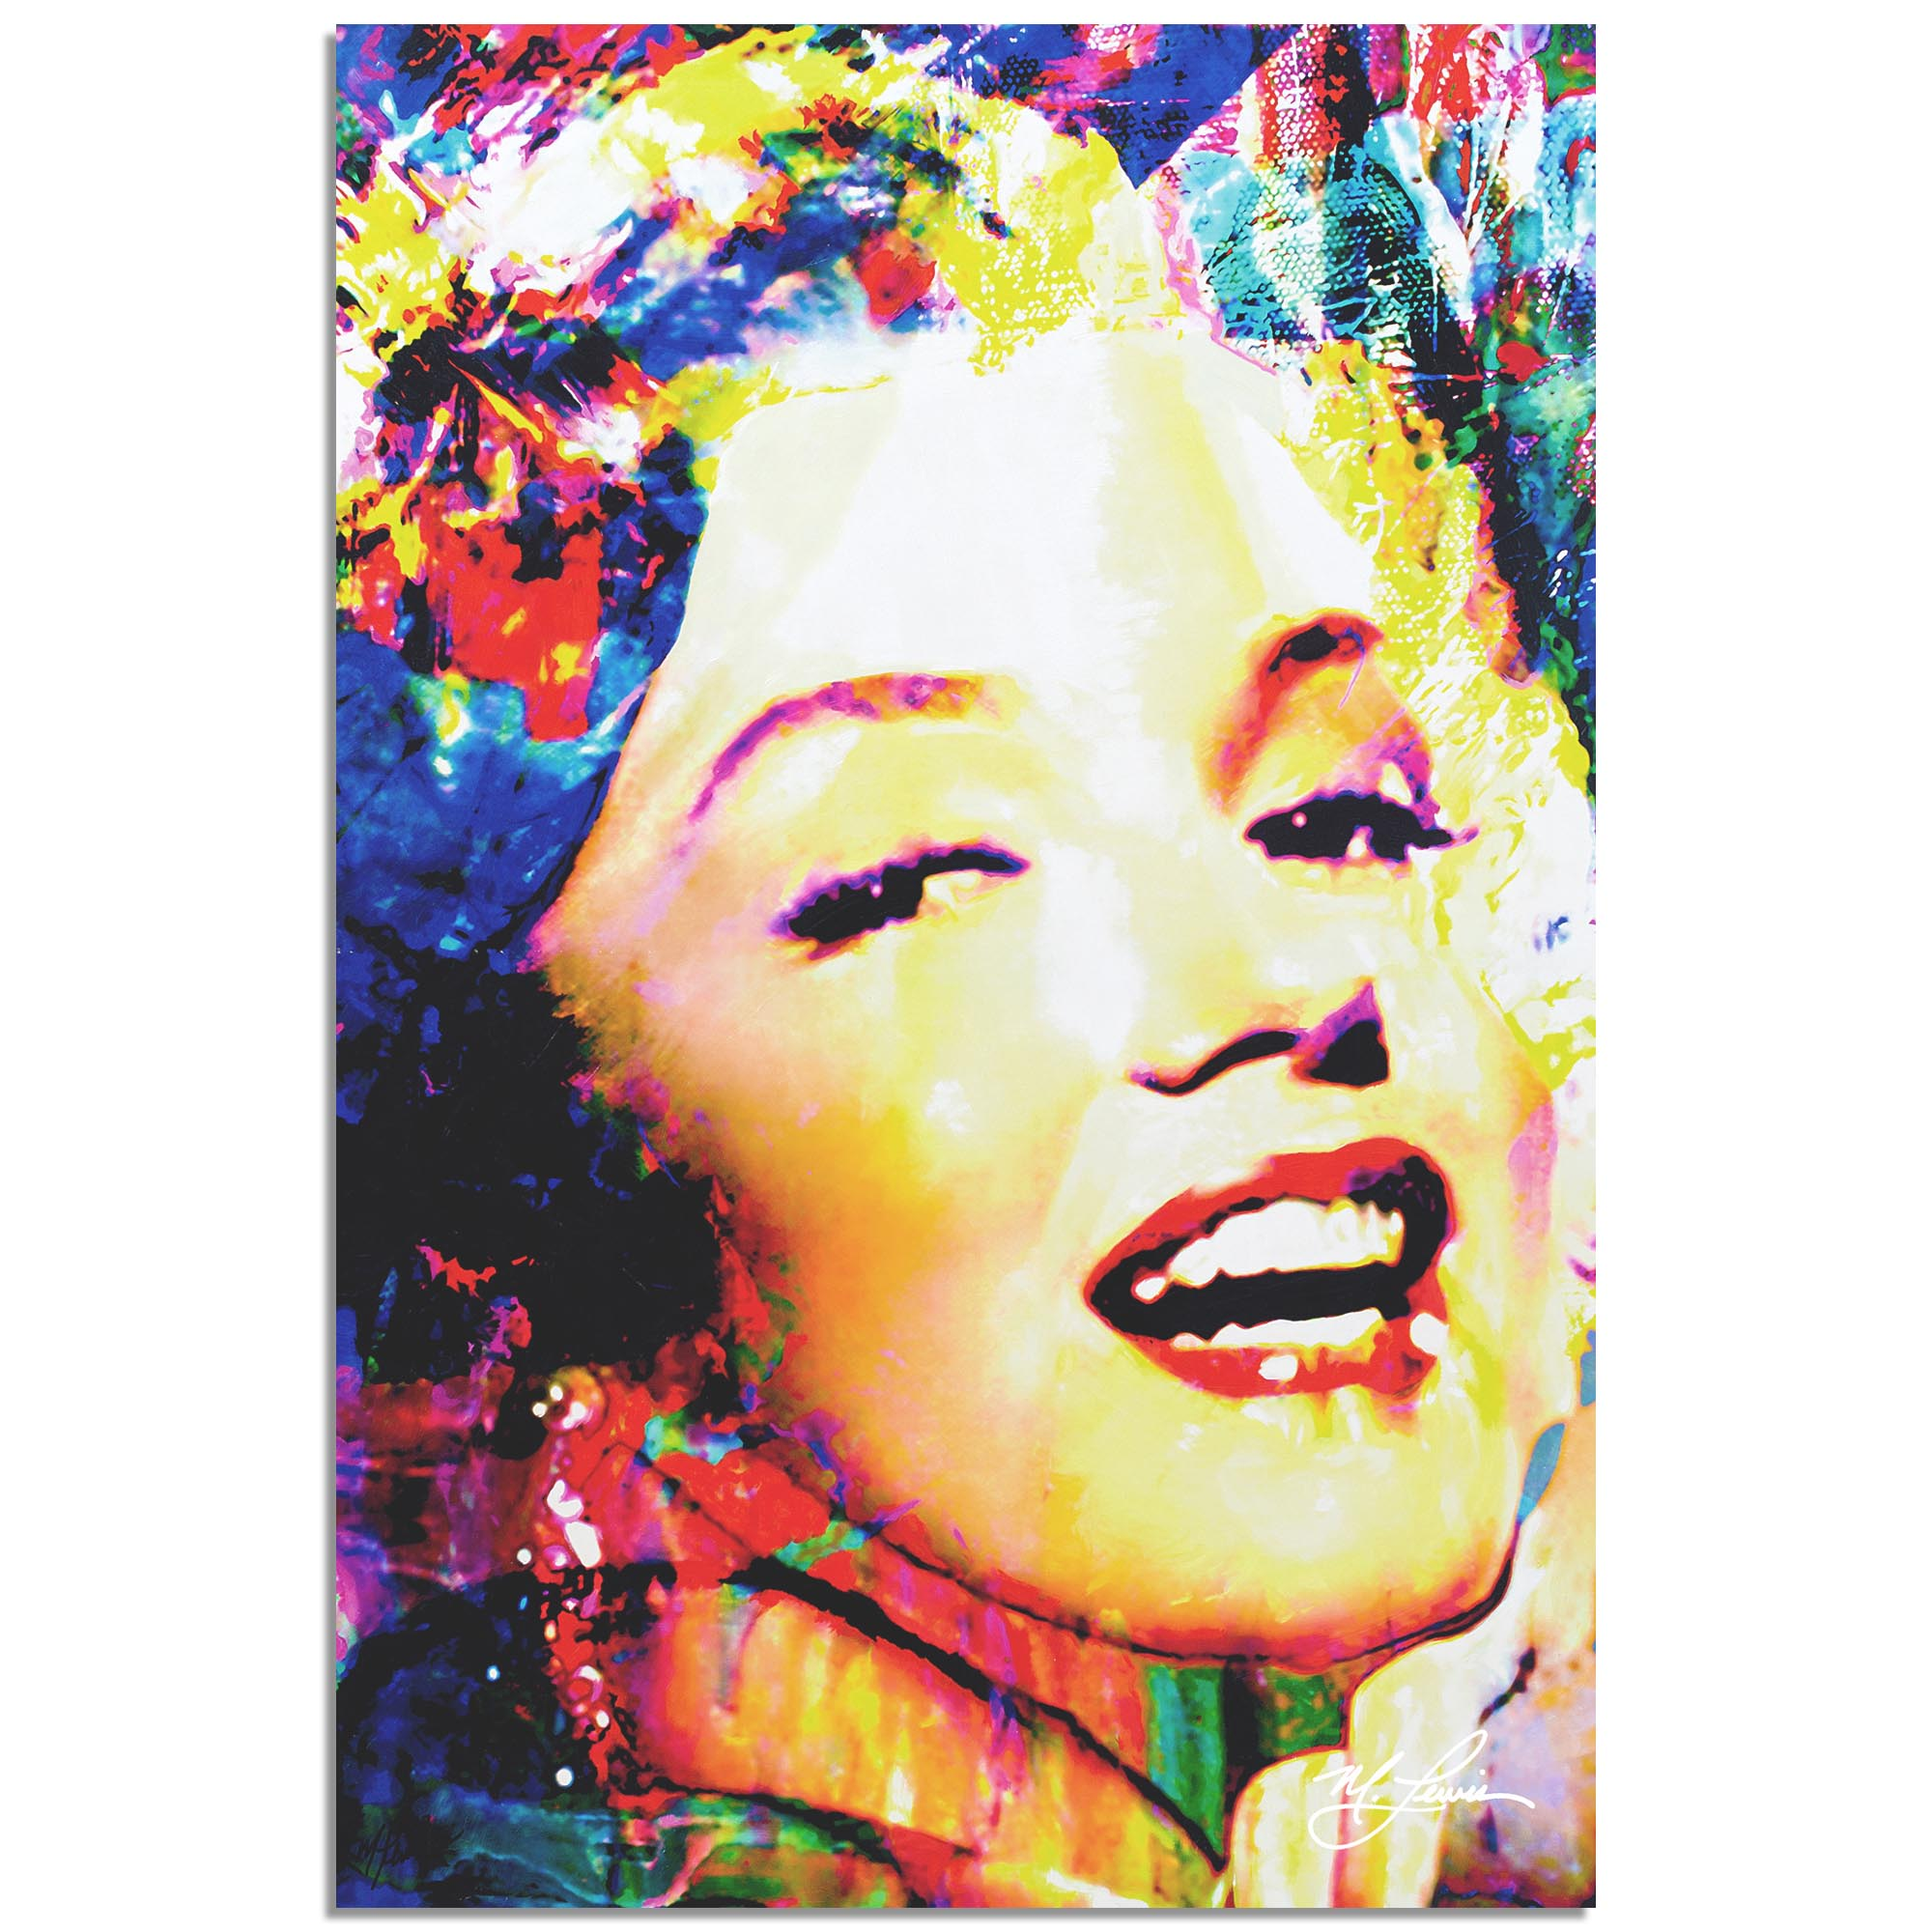 Mark Lewis 'Marilyn Monroe Marilyn Bee' 22in x 32in Celebrity Pop Art on Metal or Plexiglass